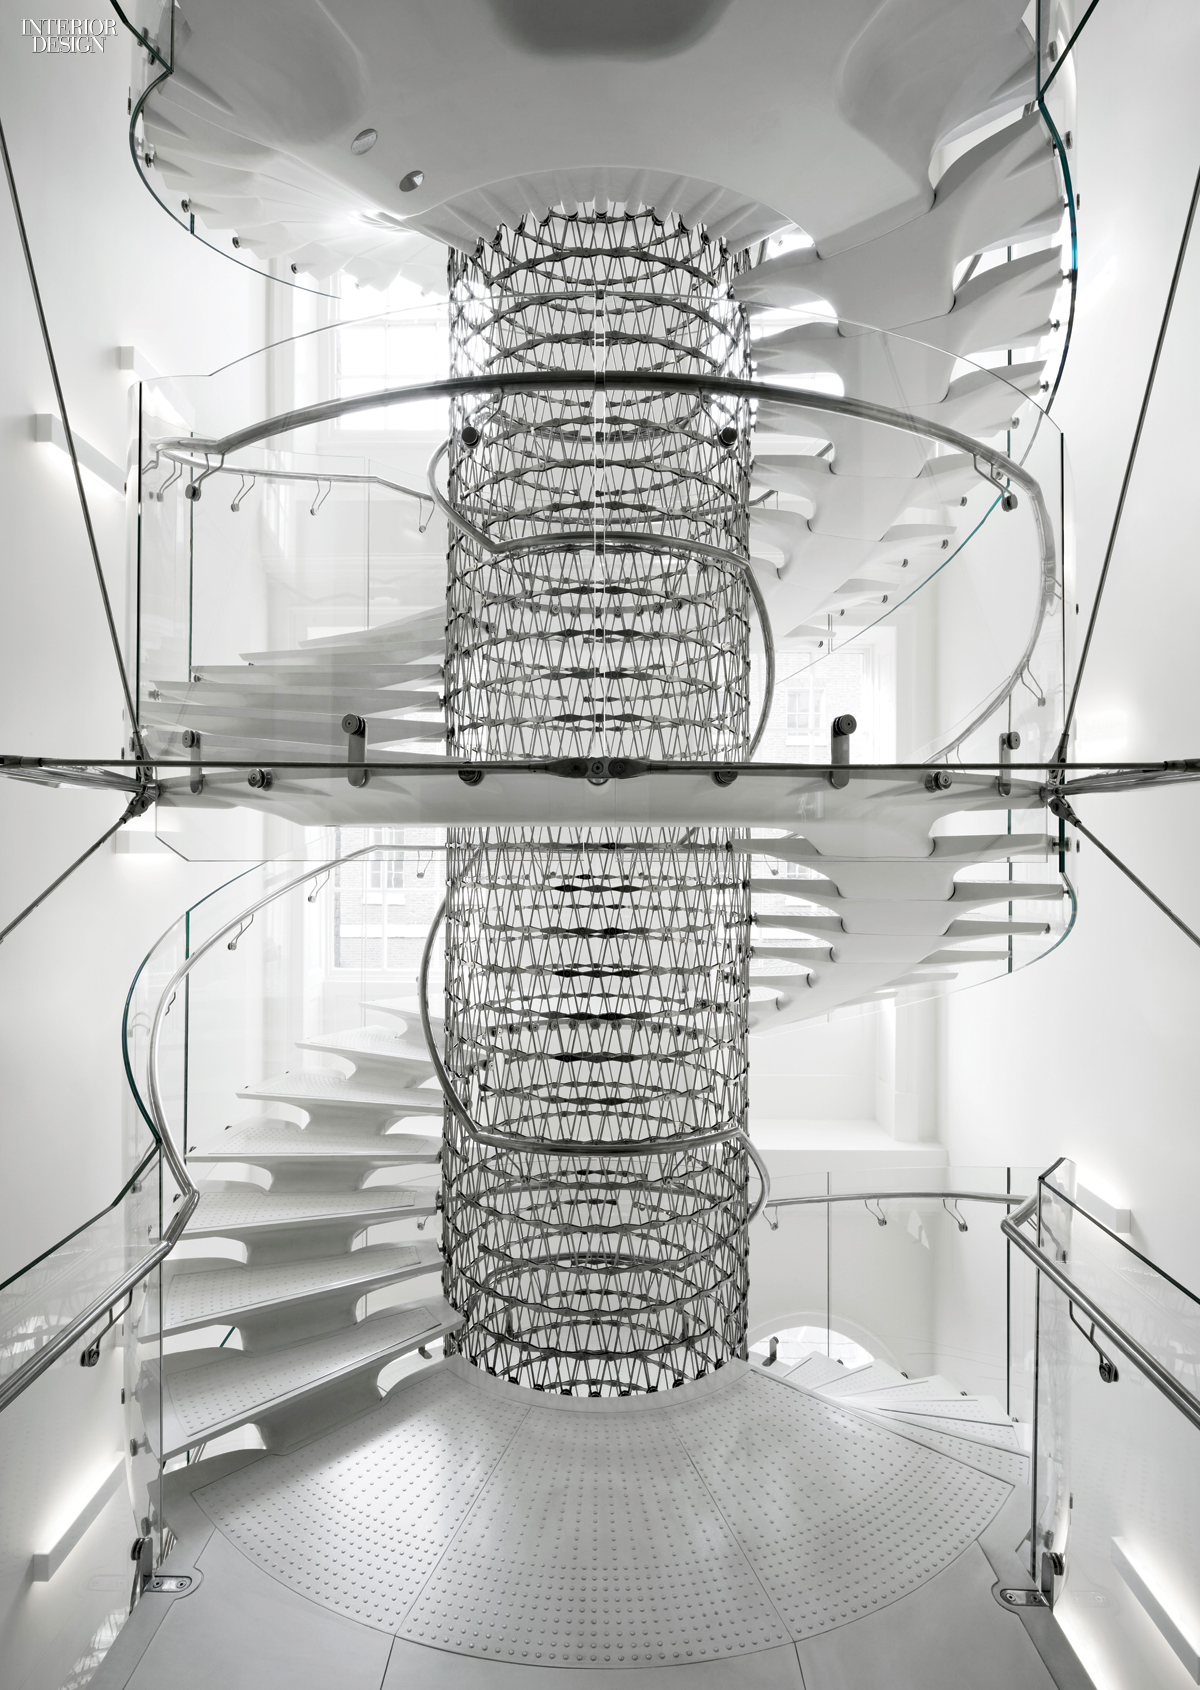 Eva jiricna 39 s uhpc stairs for london 39 s somerset house for Spiral staircase blueprint